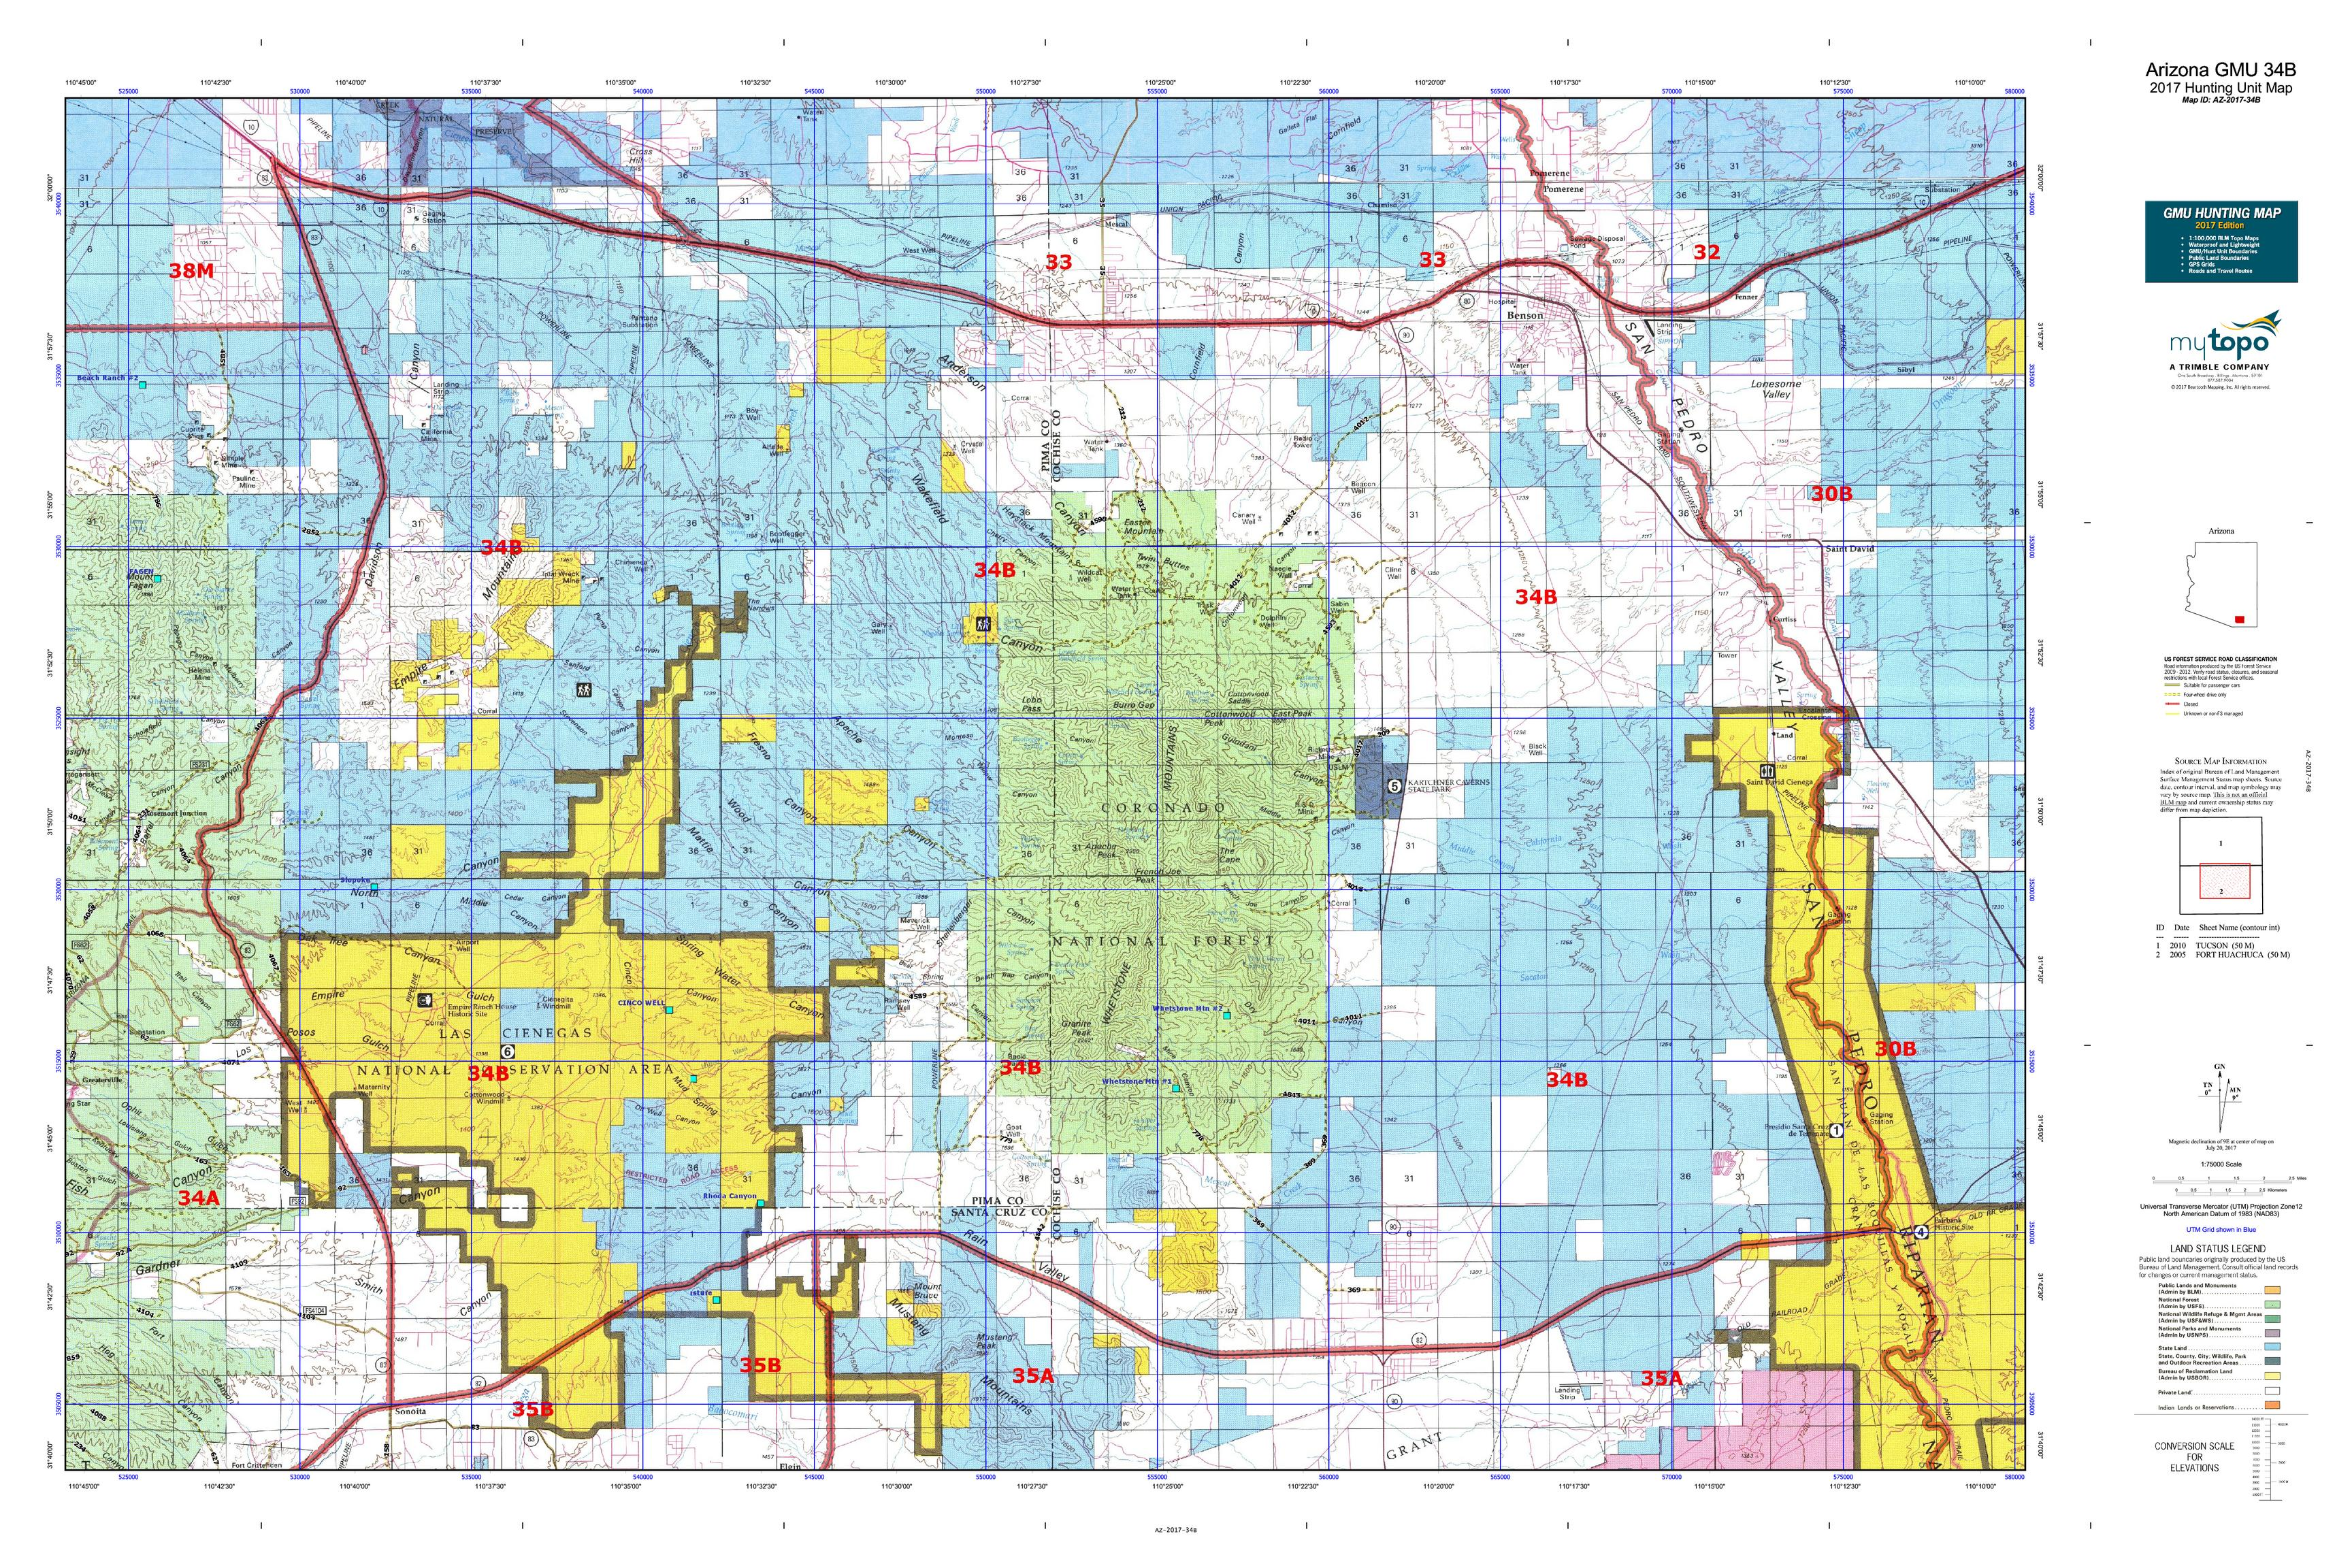 Arizona gmu 34b map mytopo for Arizona game and fish locations